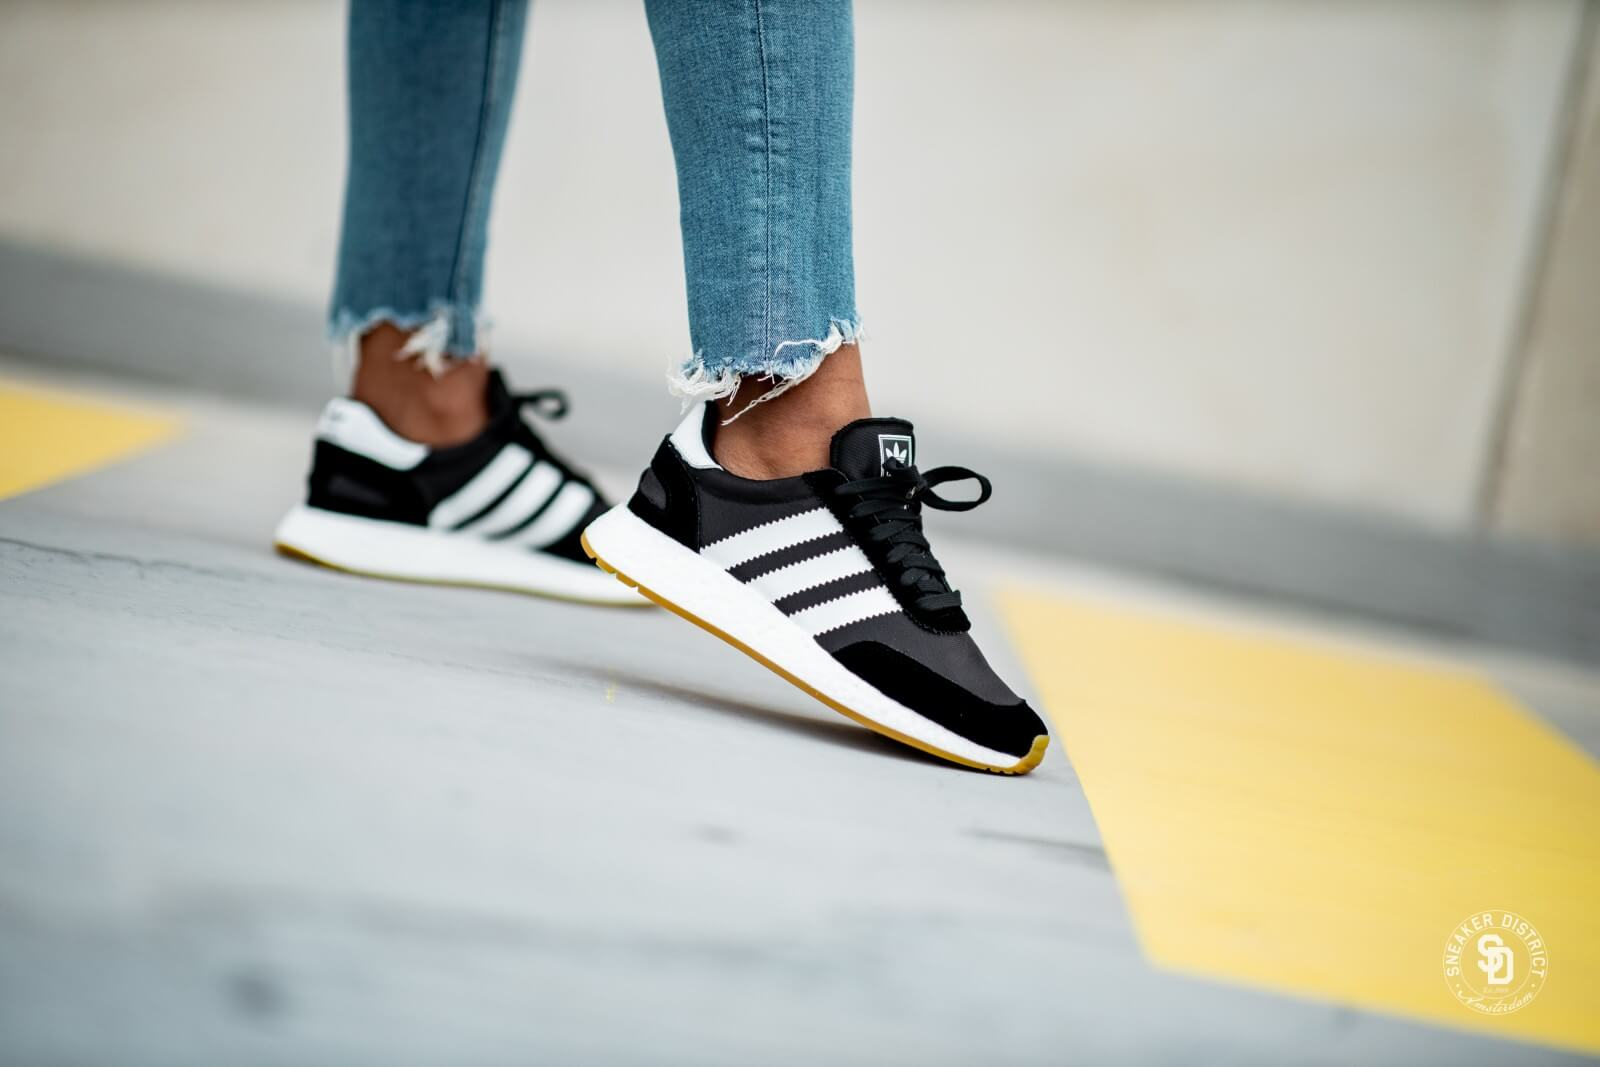 Adidas Women's I-5923 Core Black/Footwear White-Gum